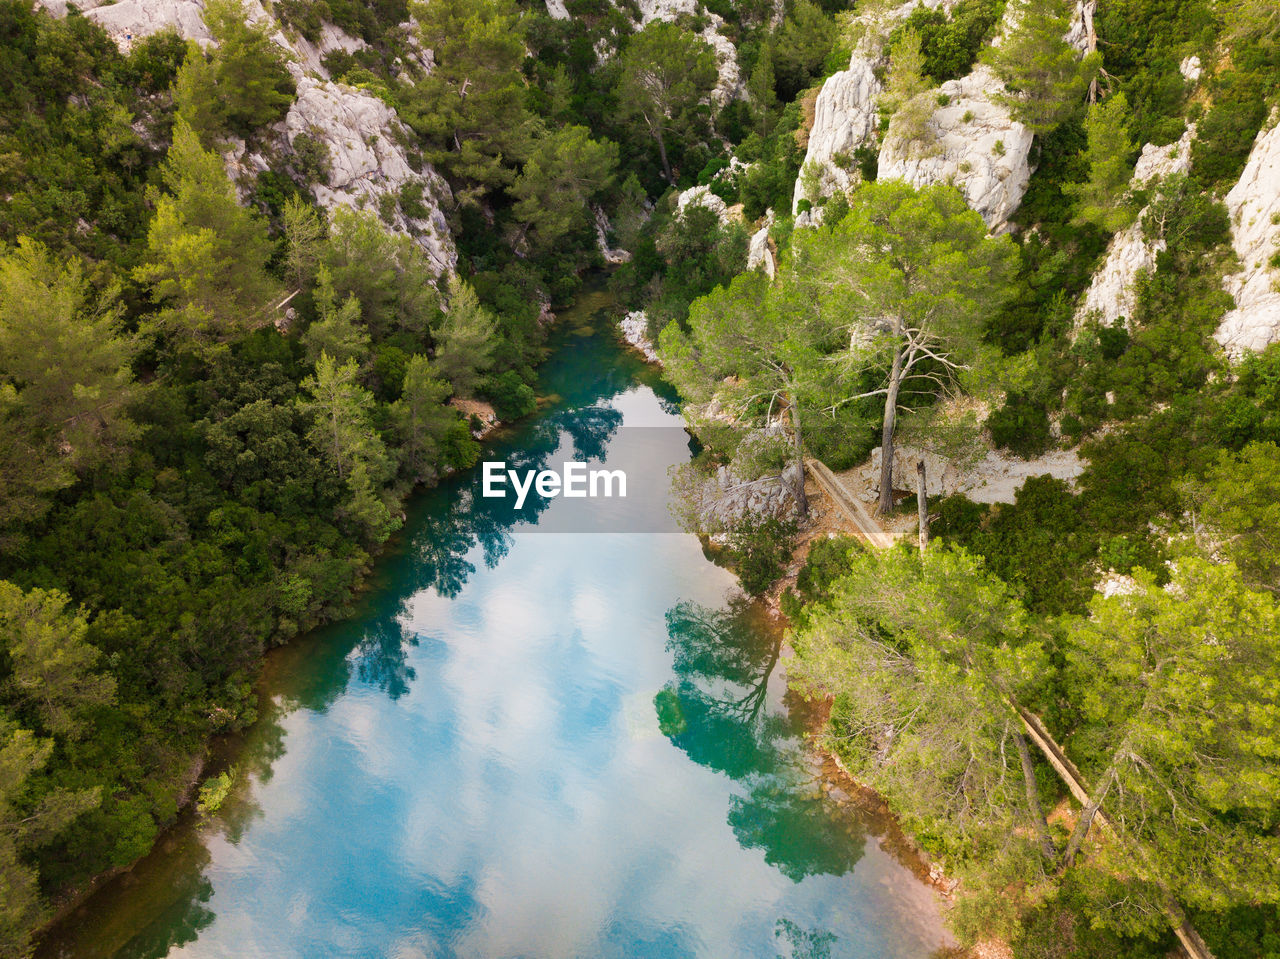 water, tree, plant, scenics - nature, high angle view, nature, beauty in nature, no people, day, tranquil scene, tranquility, outdoors, non-urban scene, sea, land, reflection, idyllic, green color